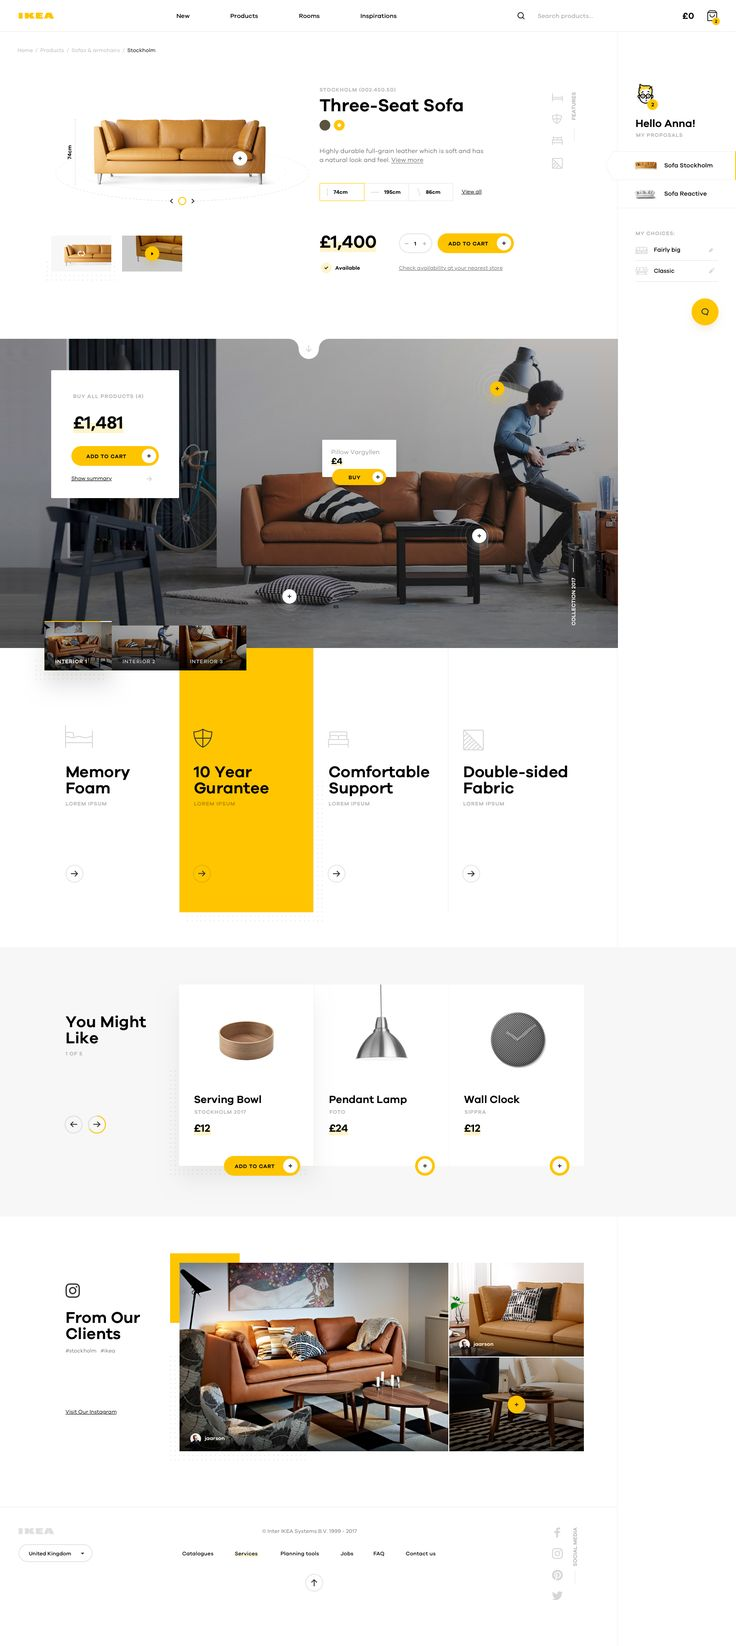 https://dribbble.com/shots/3498642-IKEA-online-experience-redesigned-concept/attachments/773155